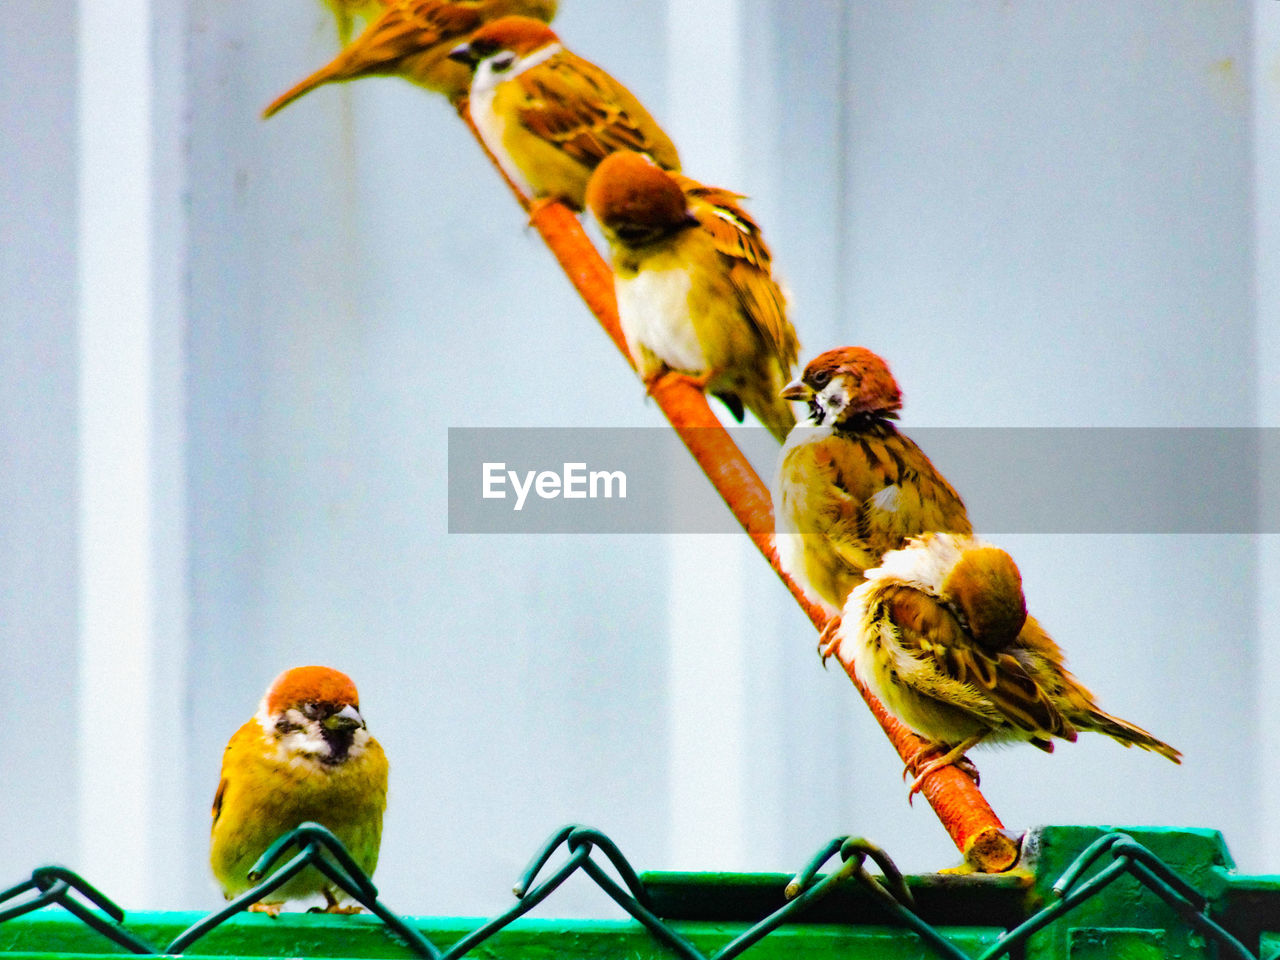 bird, animal themes, vertebrate, animal, group of animals, animal wildlife, perching, animals in the wild, focus on foreground, no people, day, nature, two animals, outdoors, sparrow, beauty in nature, close-up, songbird